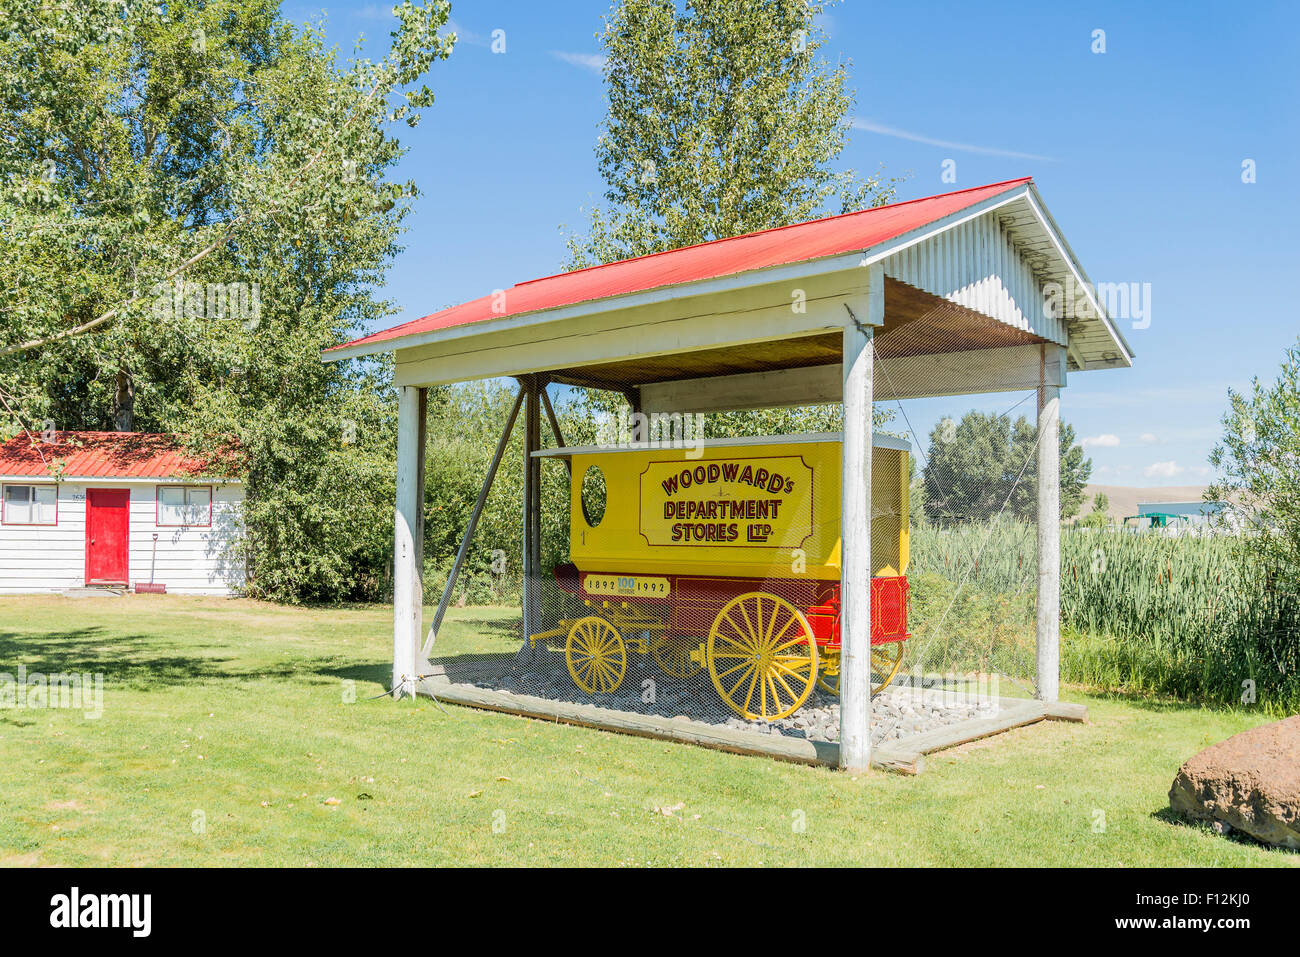 Old Woodward's Department Stores wagon, Douglas Lake Cattle Company, , British Columbia, Canada - Stock Image